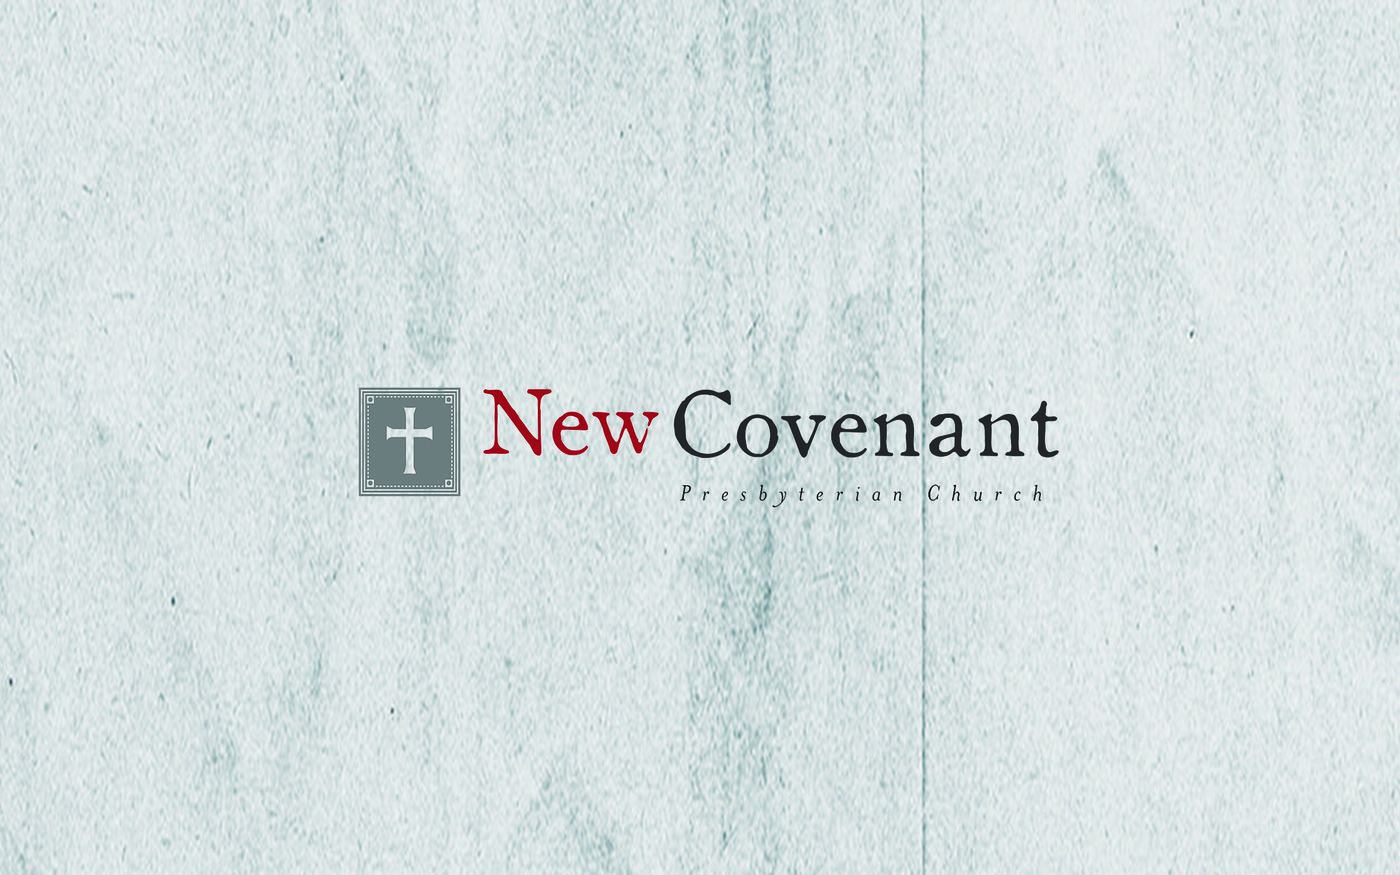 new-covenant-web-logo3